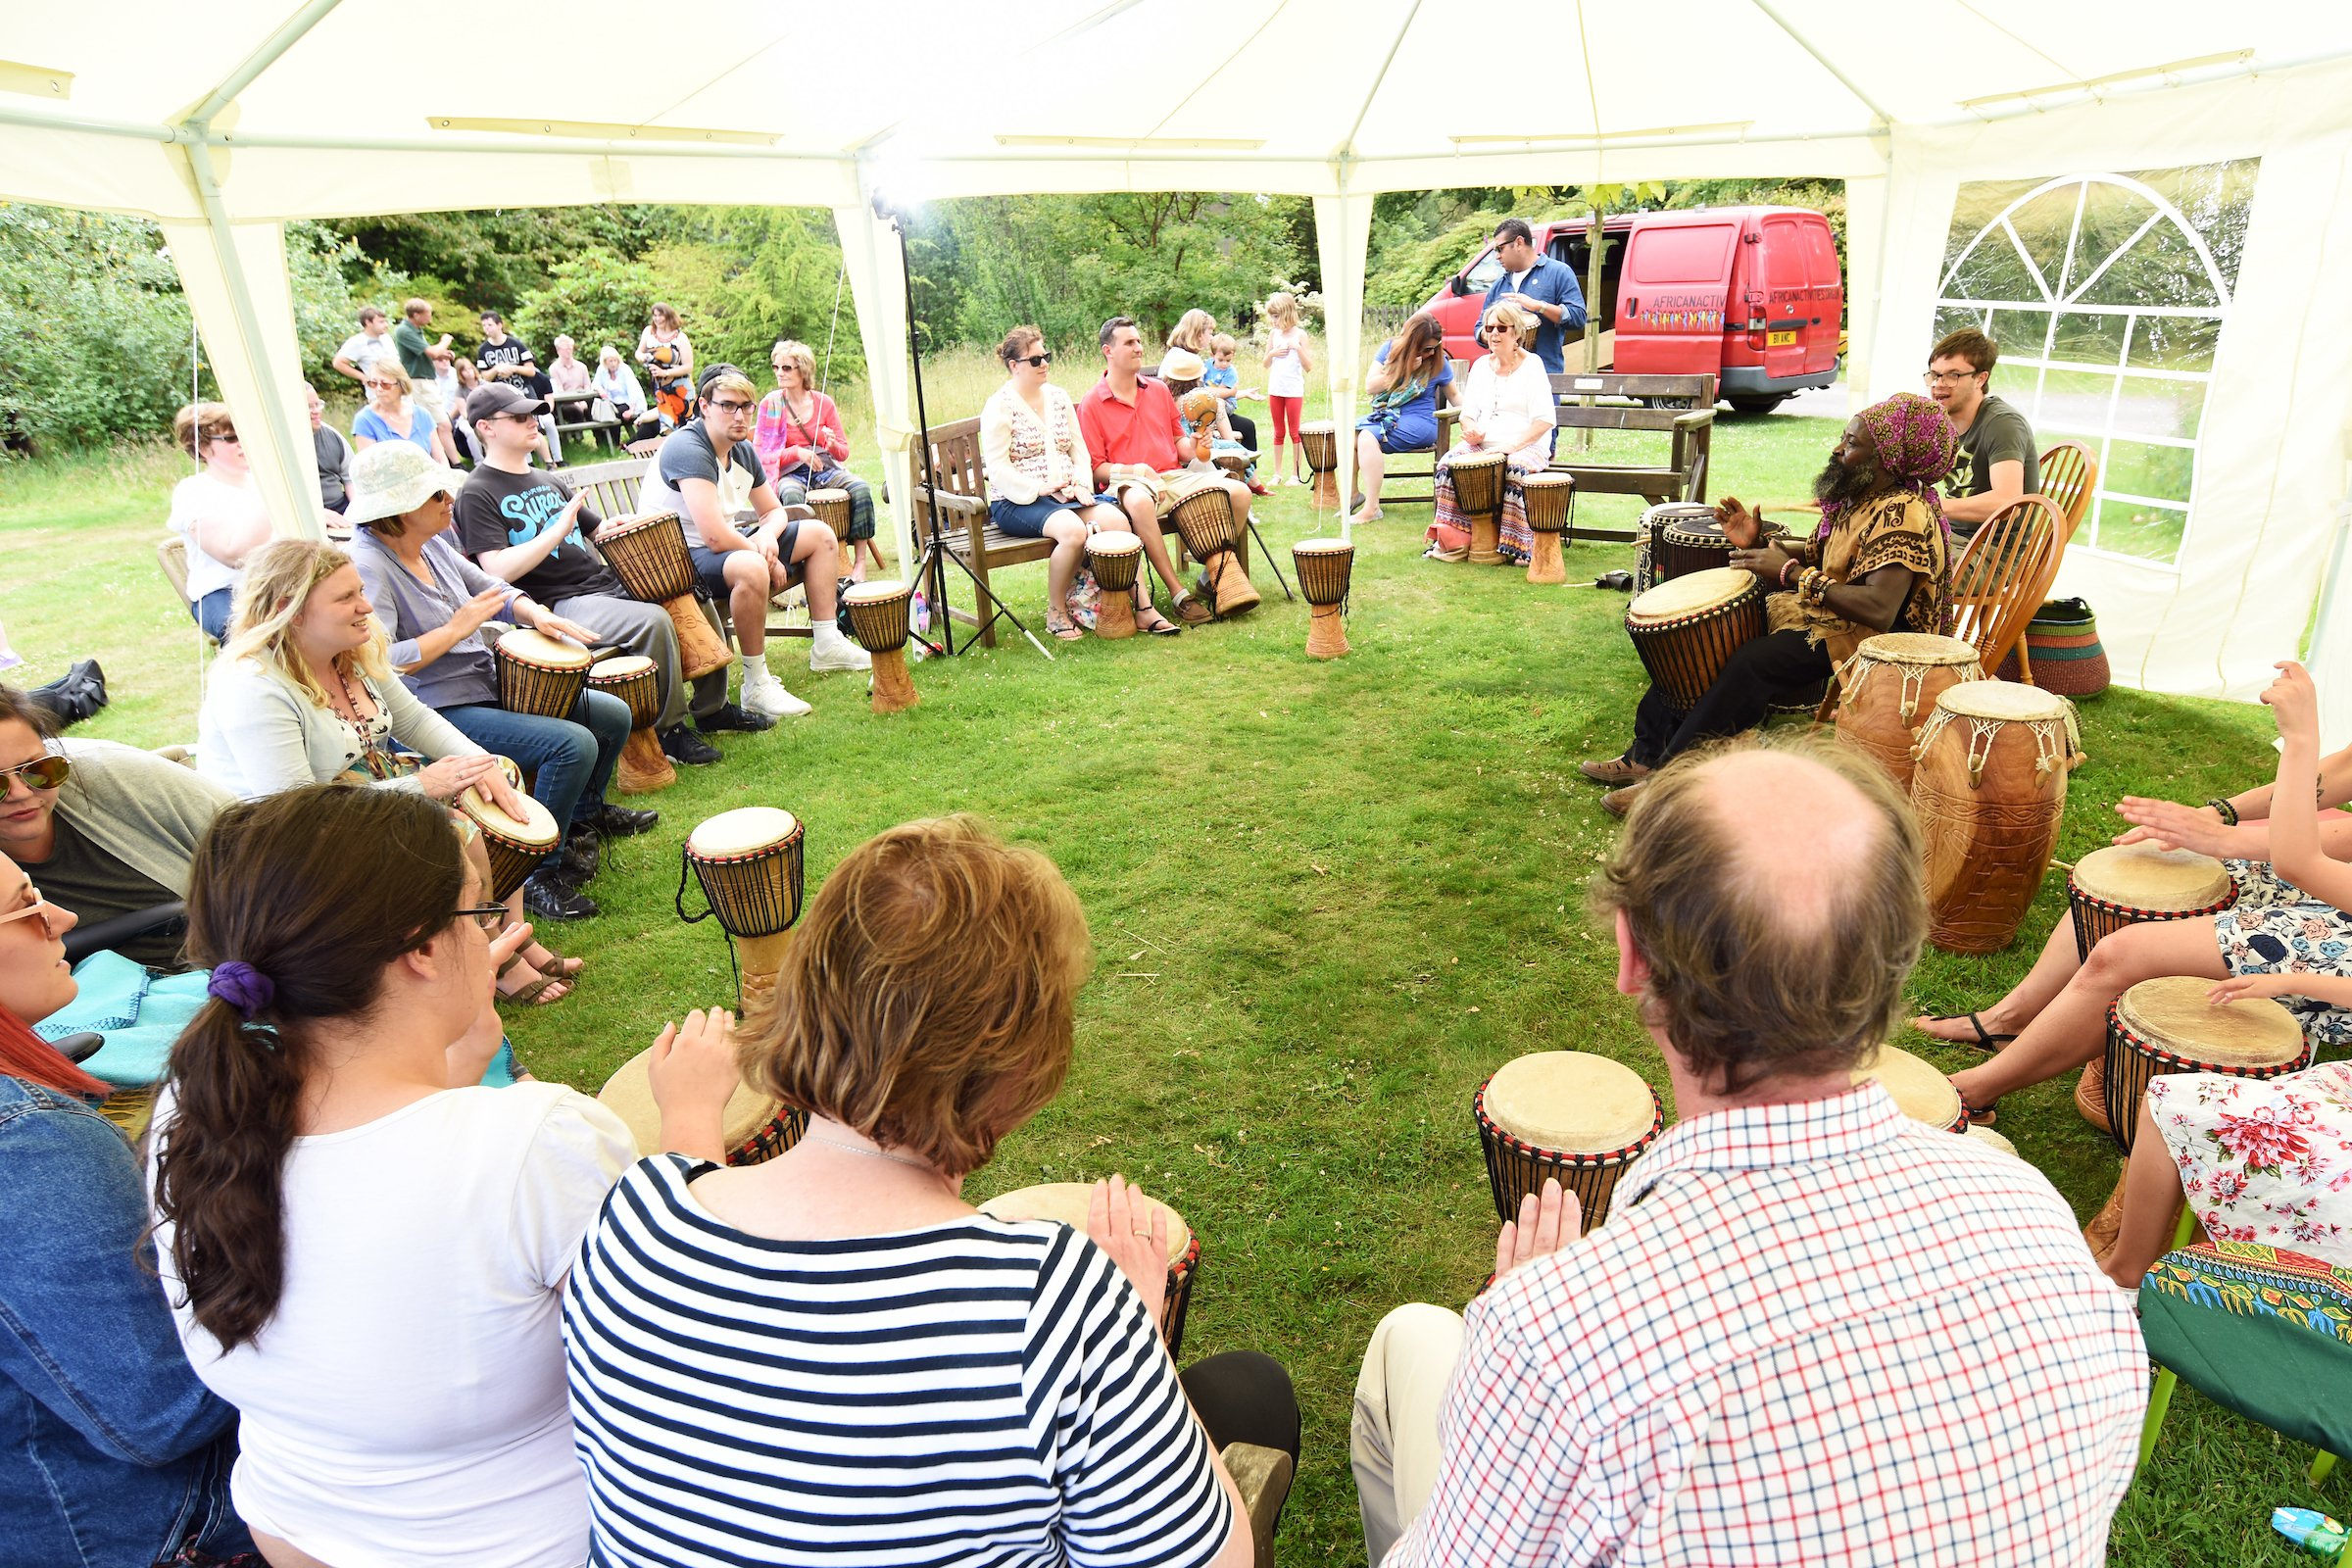 Drumming workshop with Kwambe at Furzey Gardens for the 2017 Arts Festival